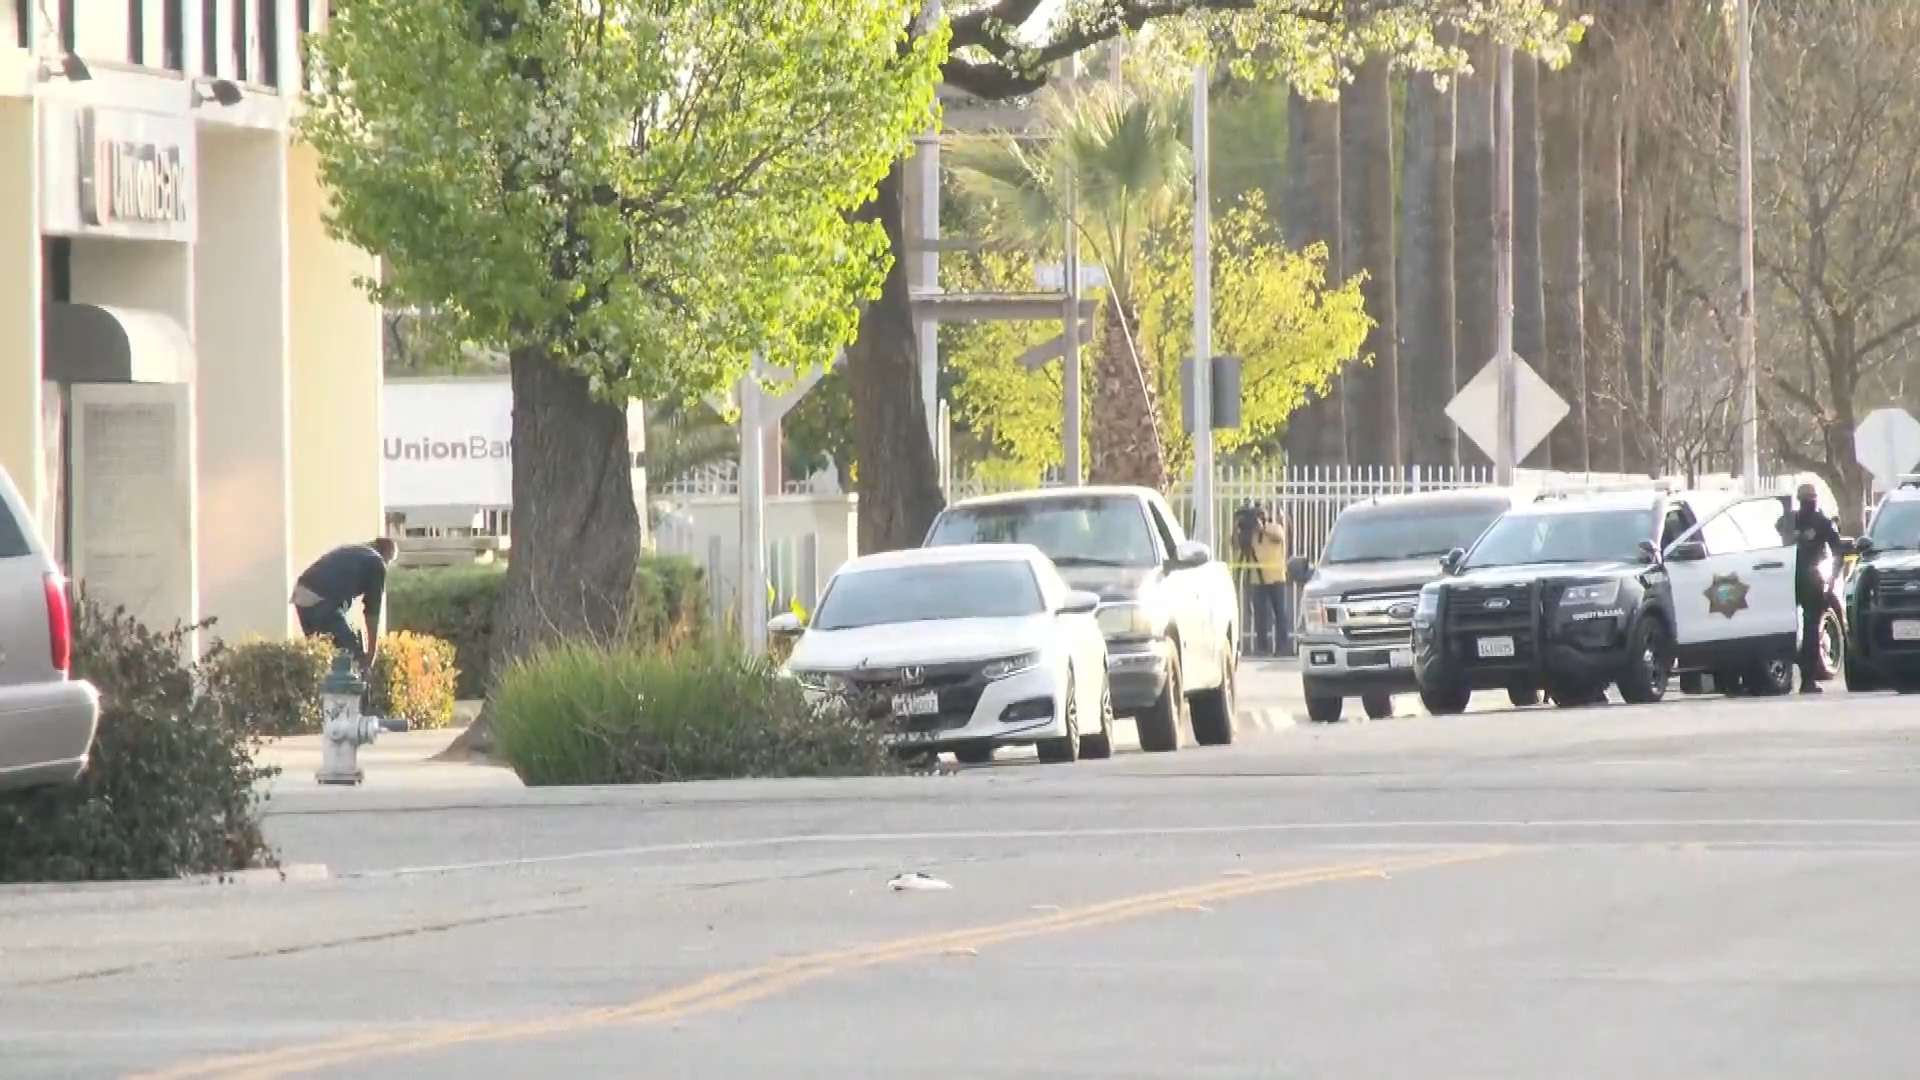 Shooting leads to stand-off outside Fresno bank, police say